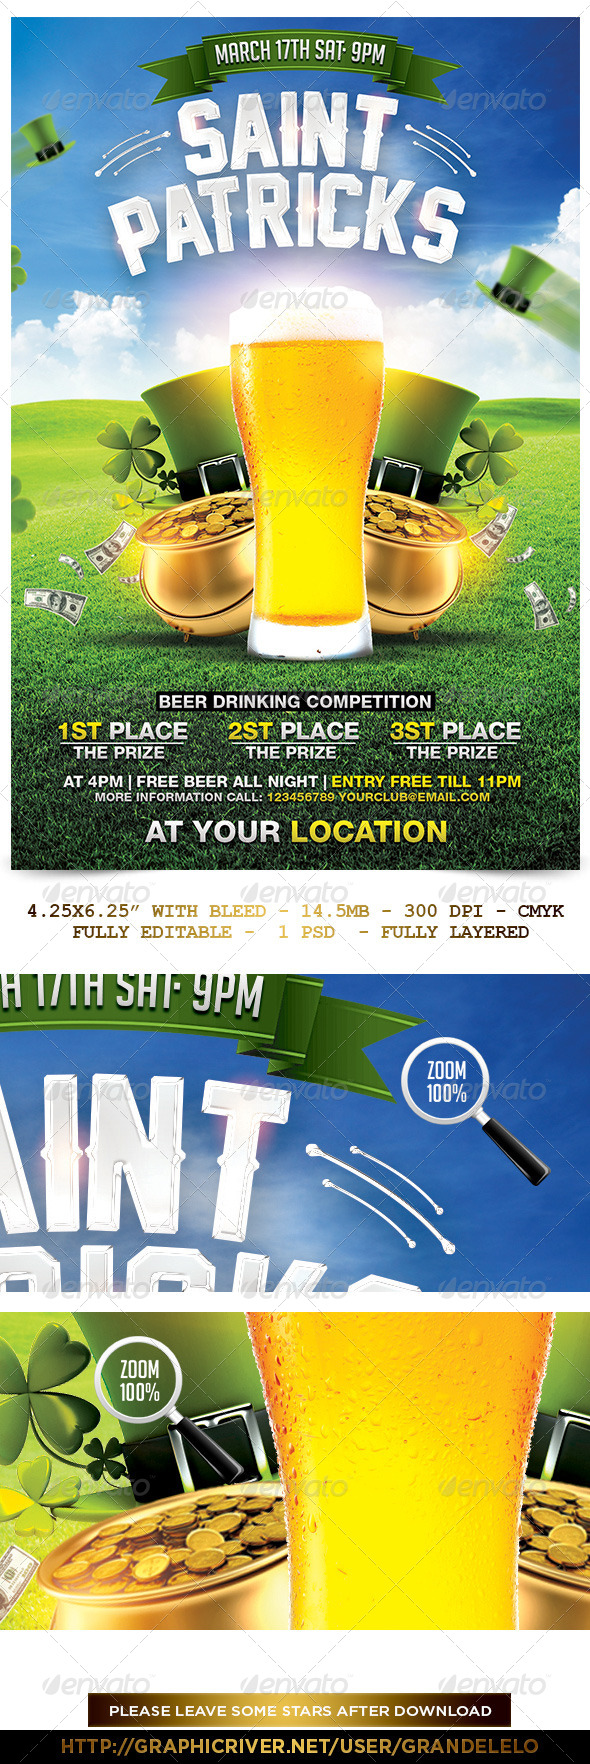 GraphicRiver Saint Patrick's Day Flyer Template 6837692